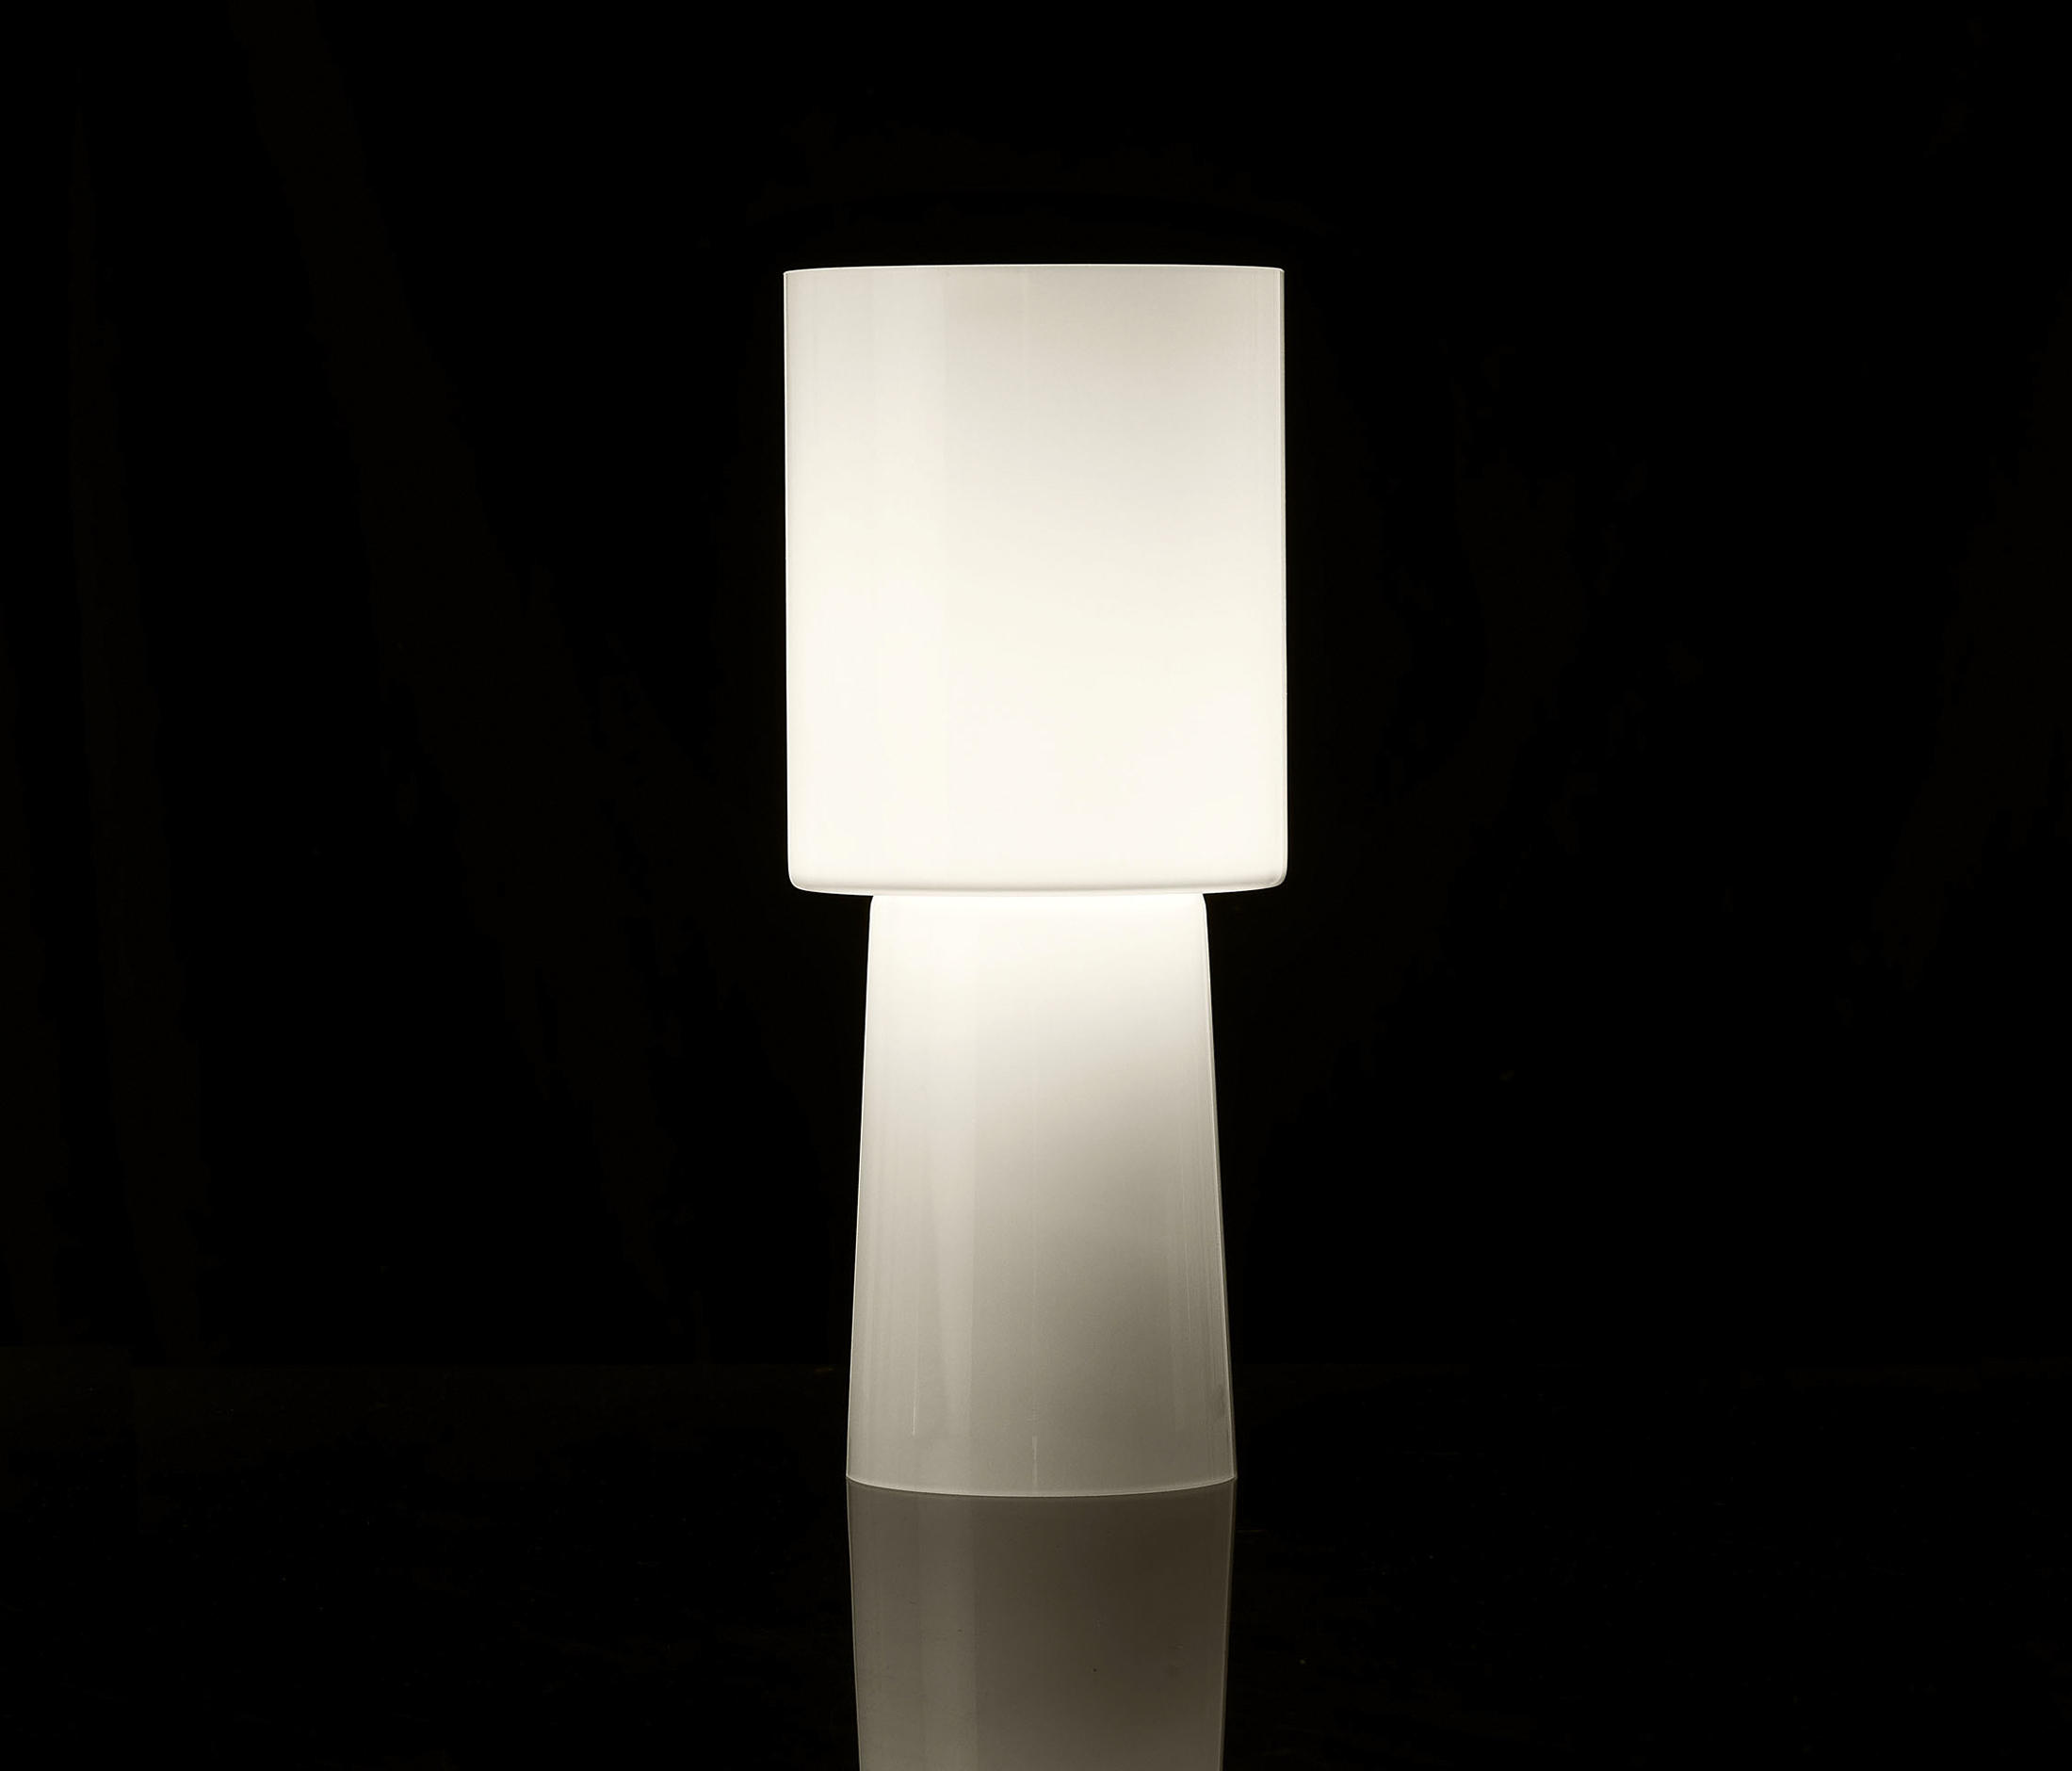 High Quality Olle 36 Table Lamp By Bsweden | Table Lamps In Glass ...